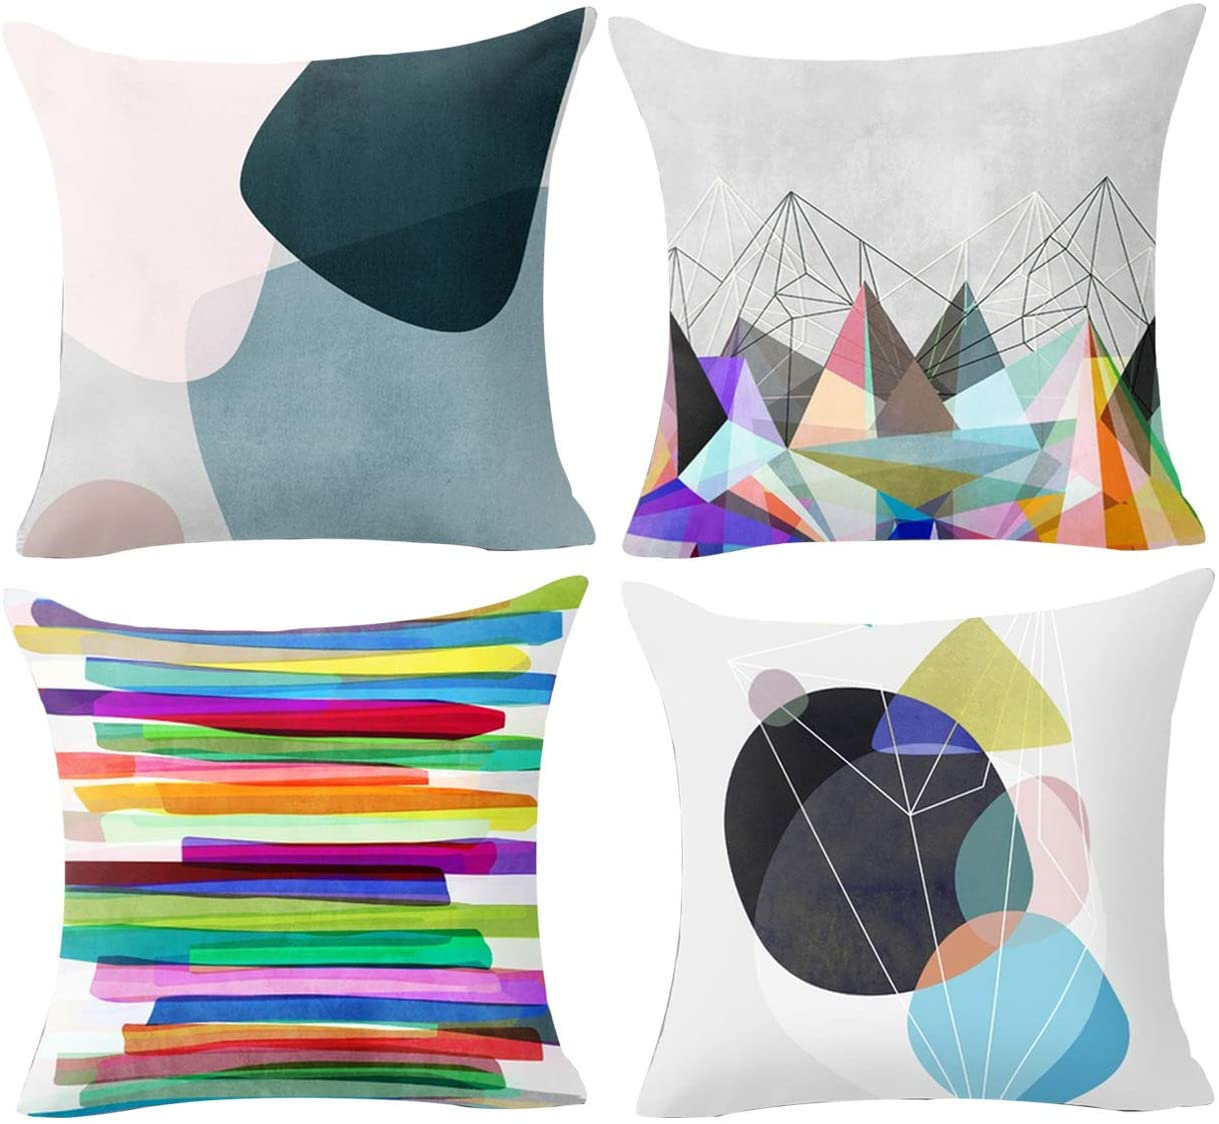 Treely Decorative Pillow Covers 18x18 Inches Geometric Throw Pillow Cover, Colorful, 4 Pack